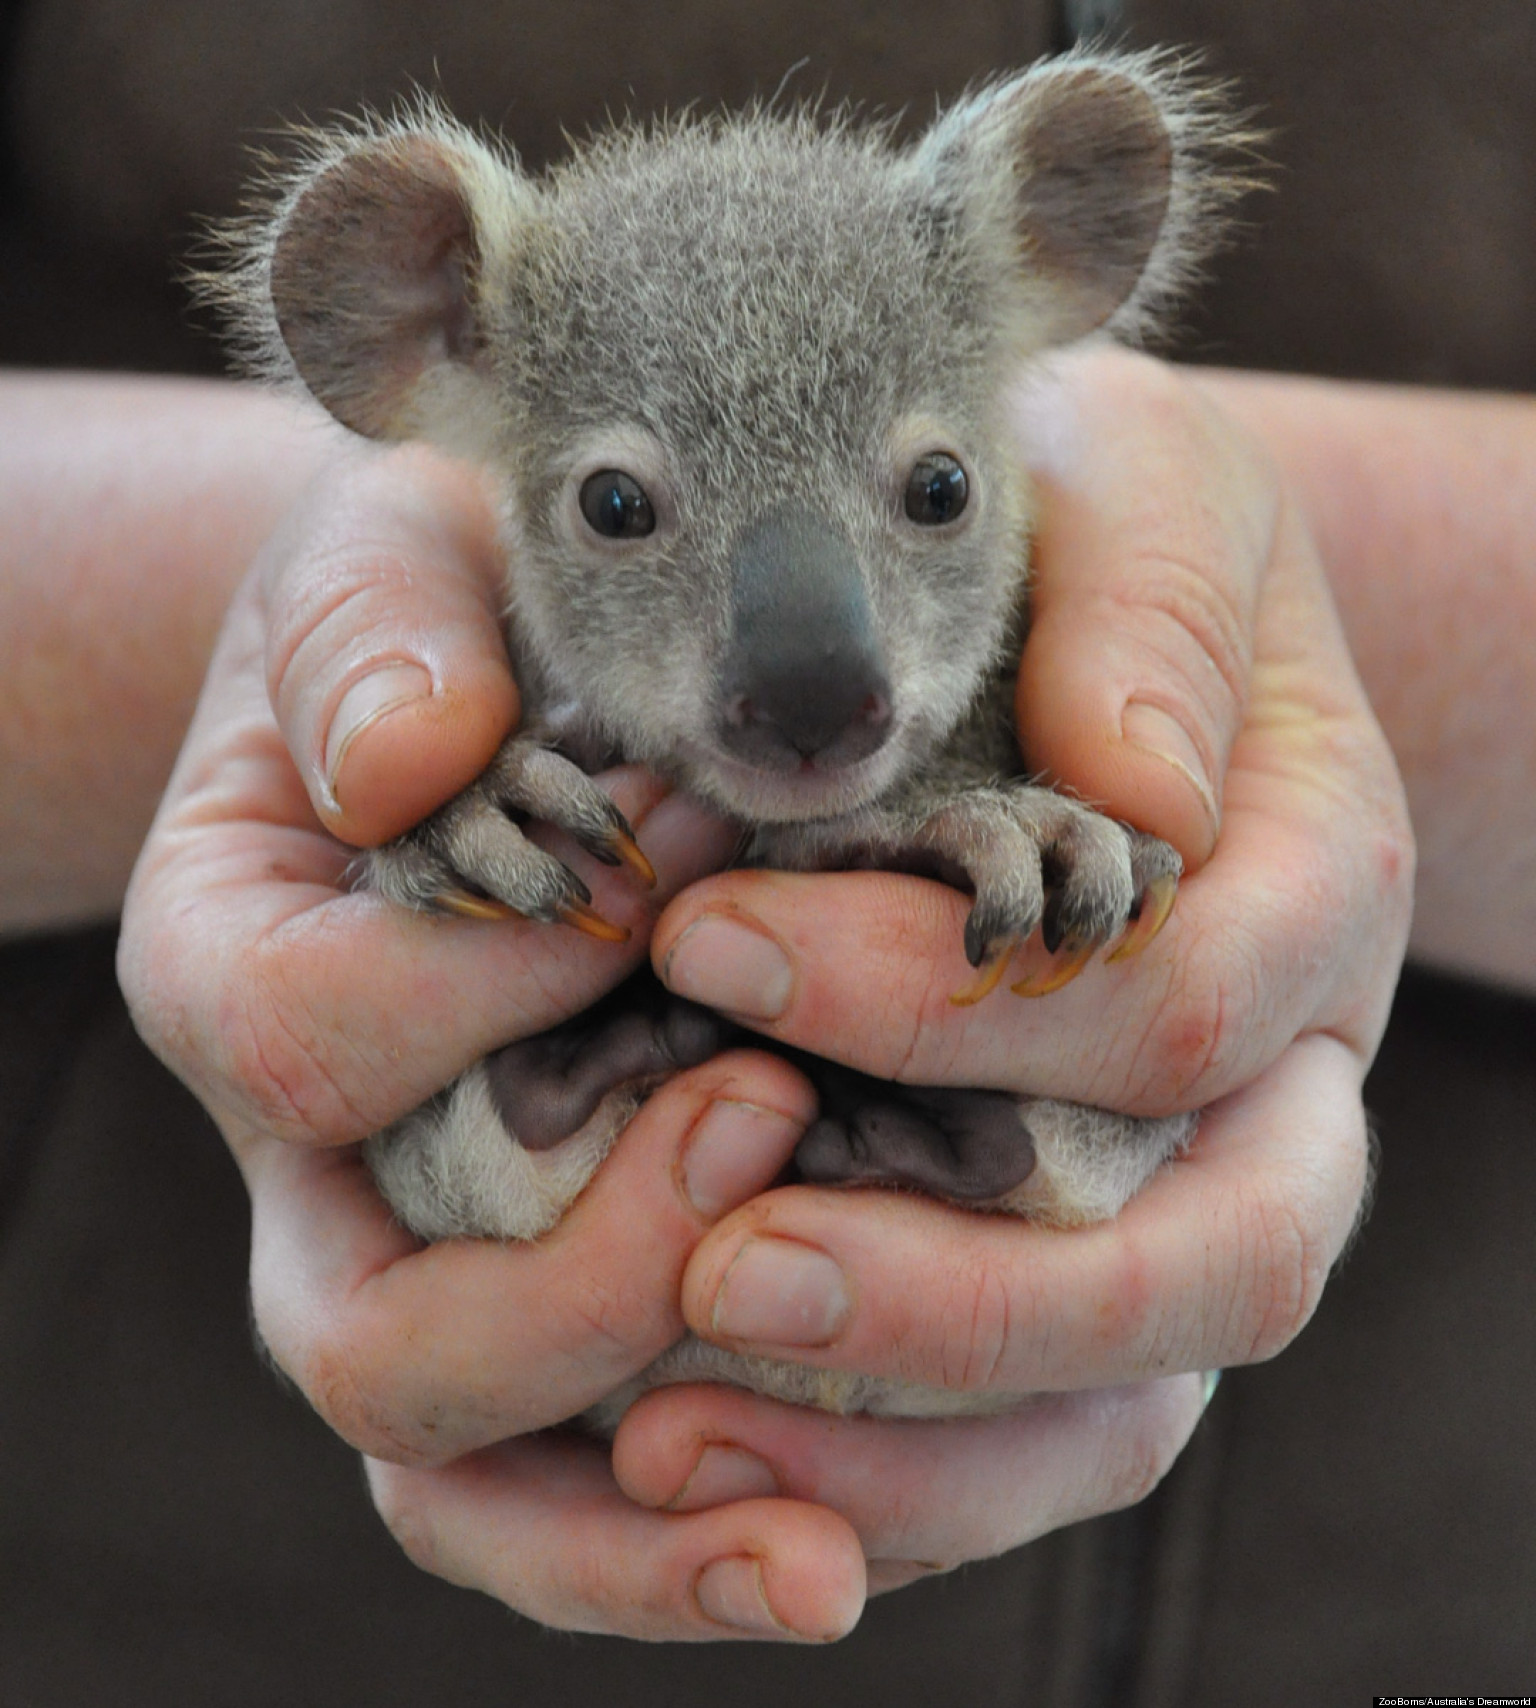 baby animal cutest animals adorable zooborns cute babies pets newborn animales babyanimals funny koala australia bebe babay babe animaux ok